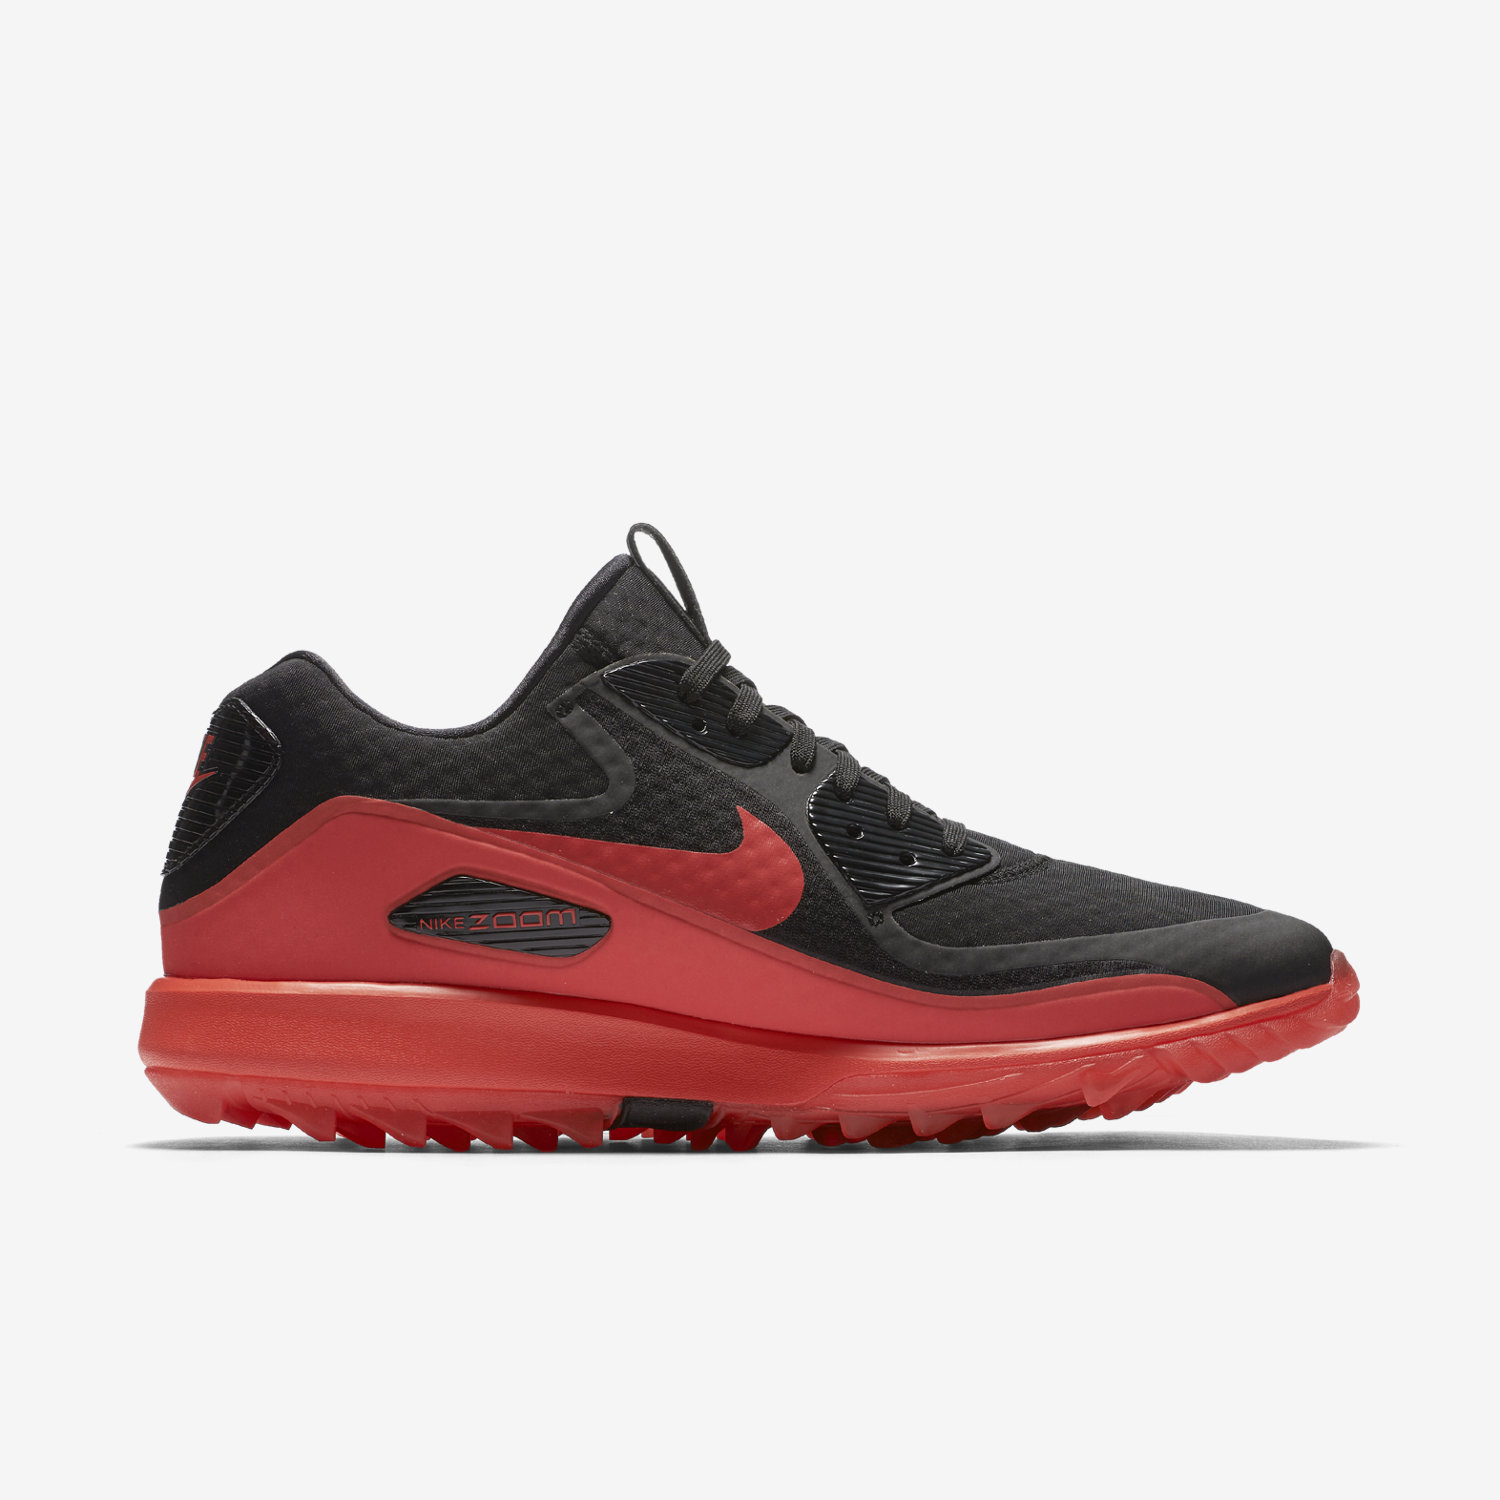 nike golf air zoom 90 it chaussures